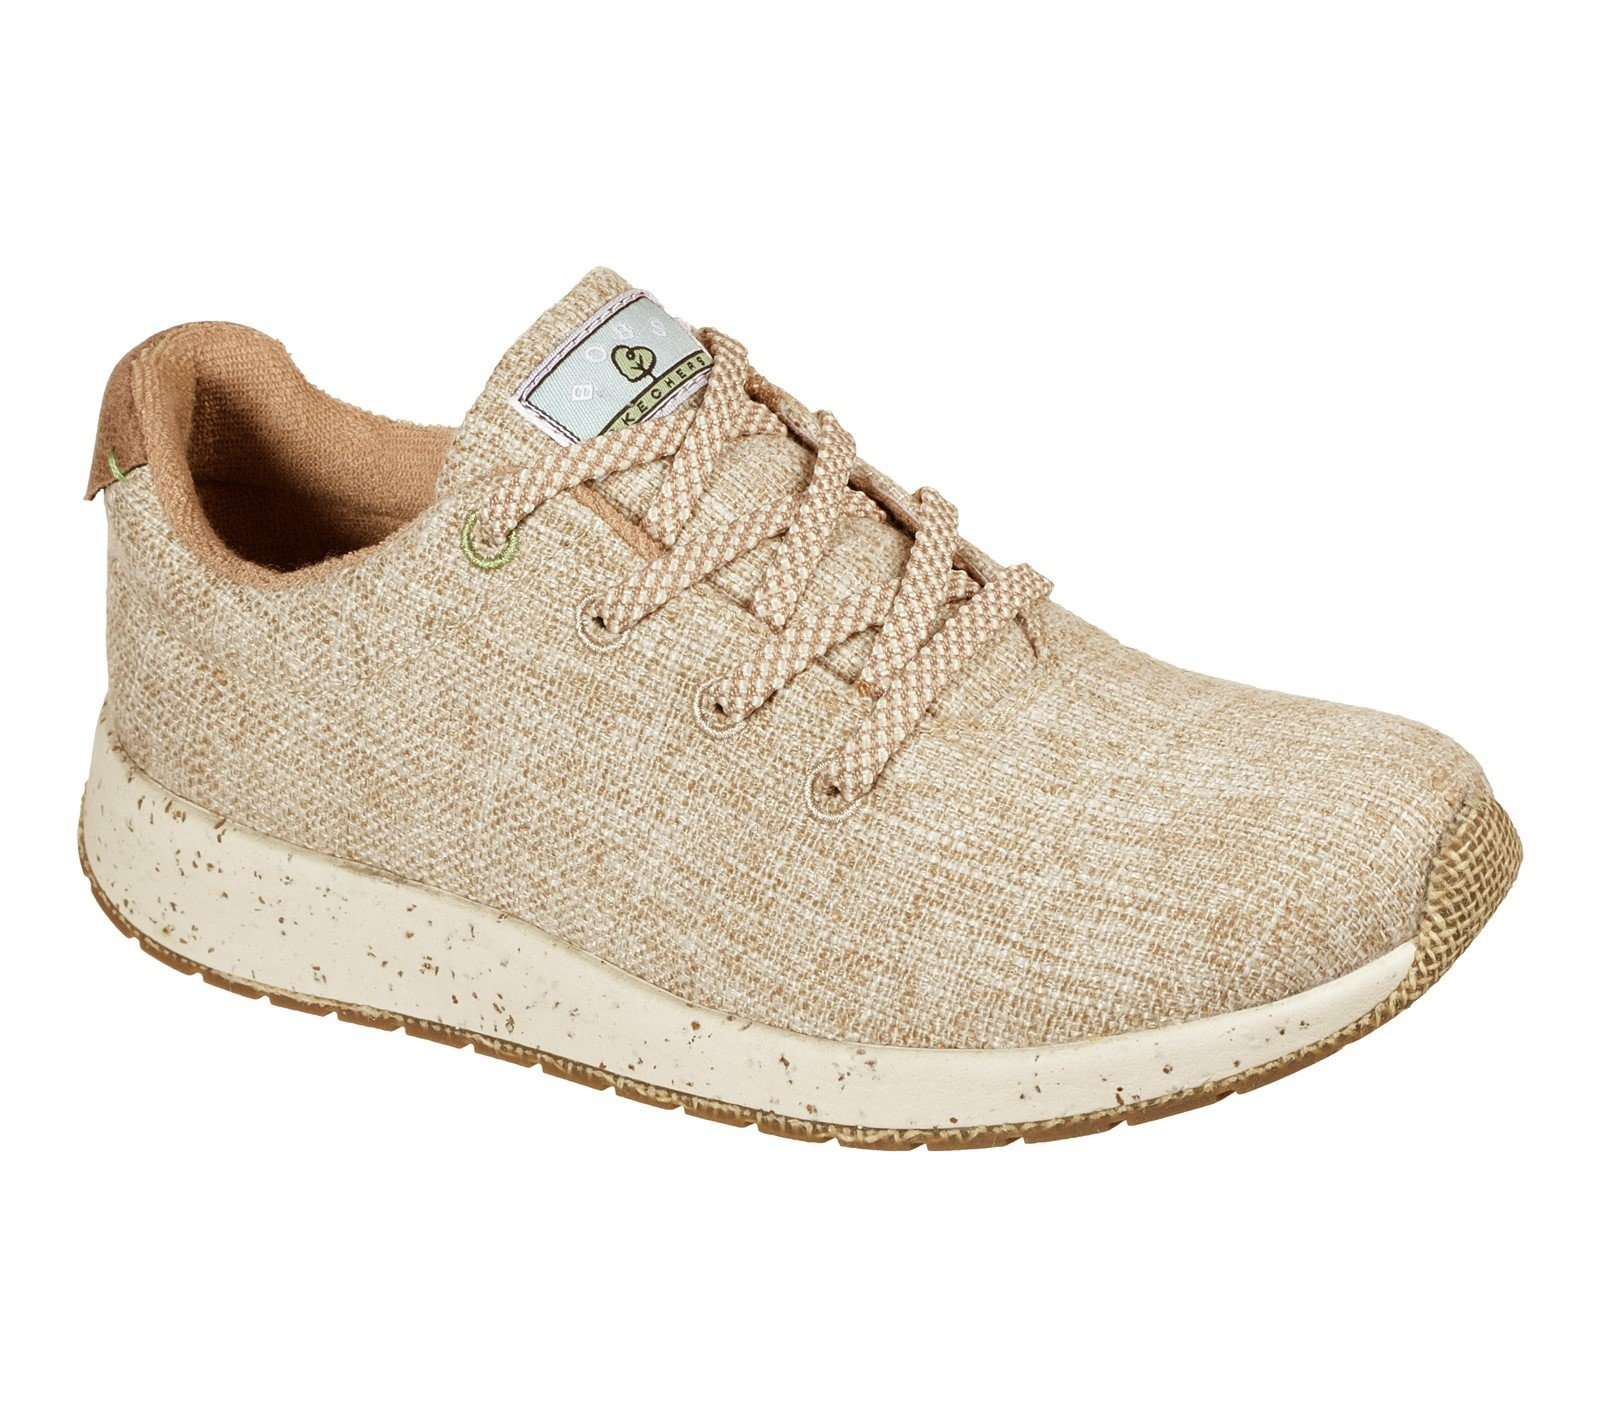 Skechers Women's Bobs Earth Sunset Peace Trainer Natural 32133 - Natural 4